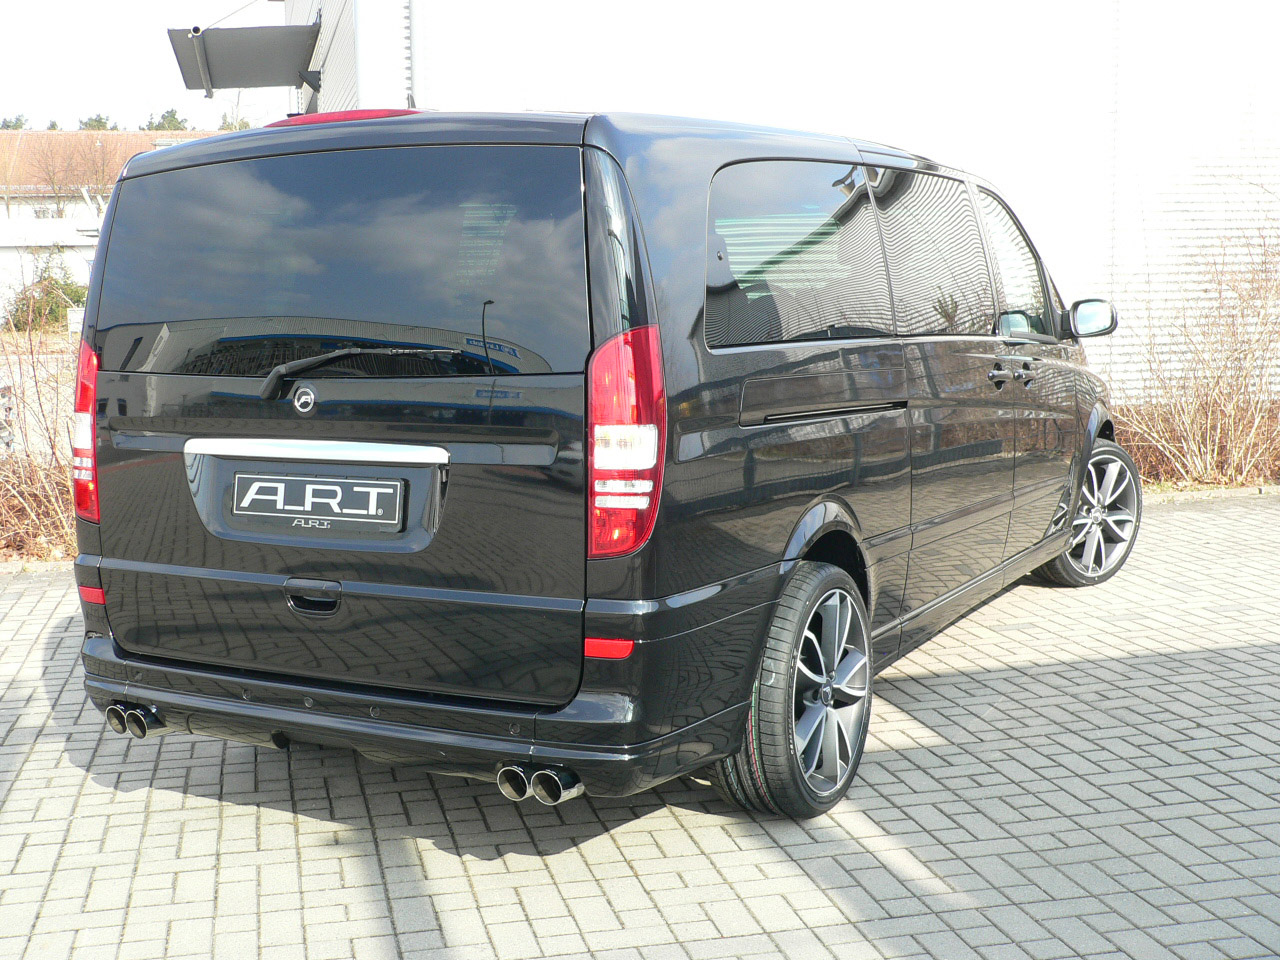 A R T Tuning Beutifies The Mercedes Benz Viano